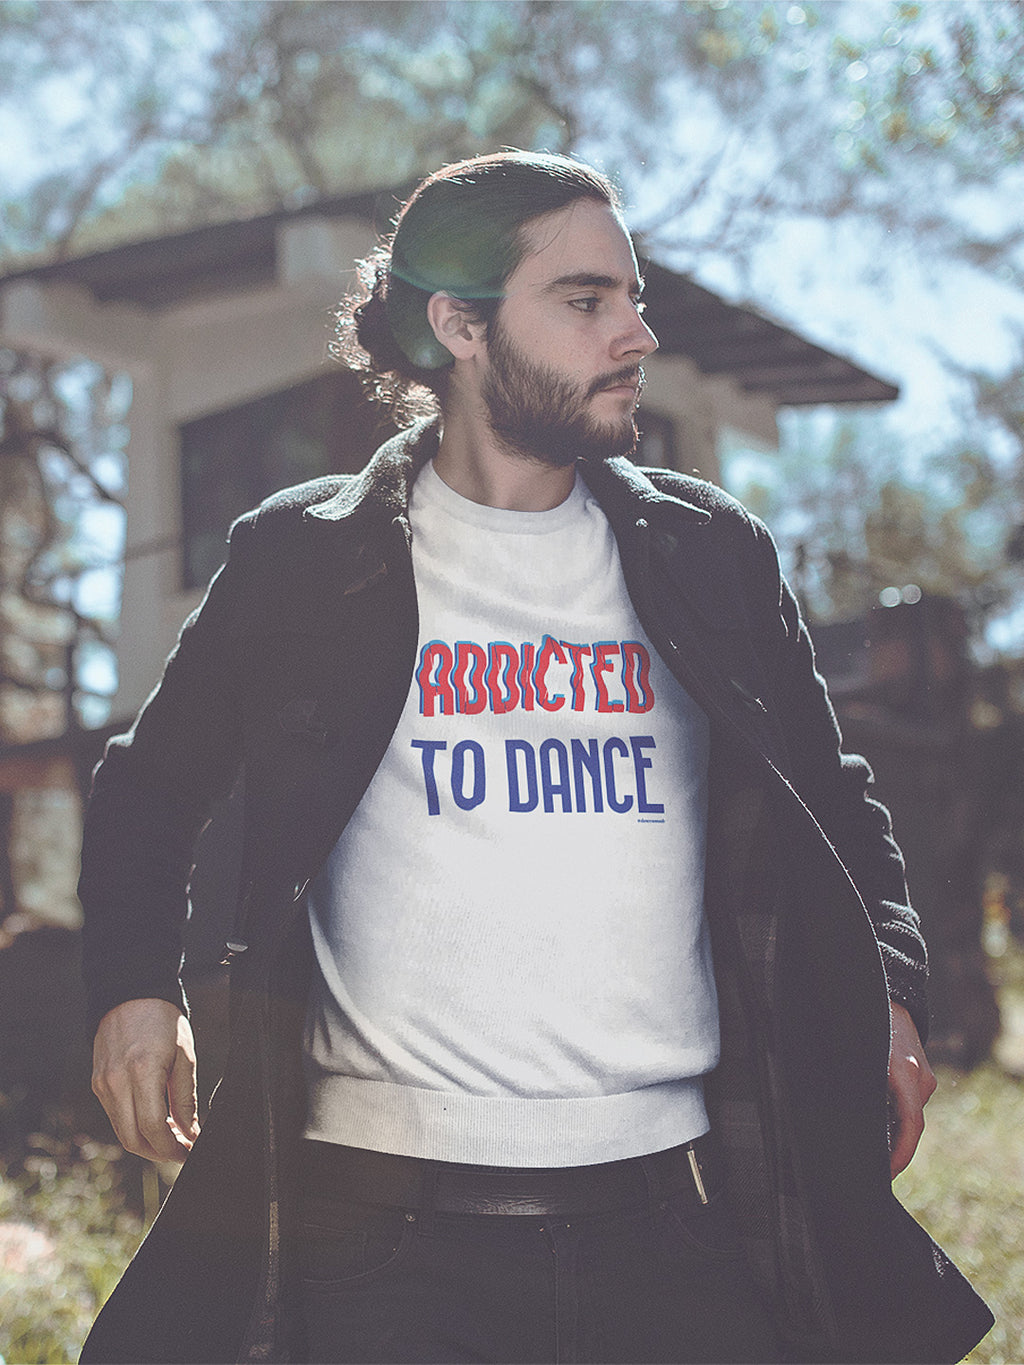 Addicted to Dance Sweater Unisex White